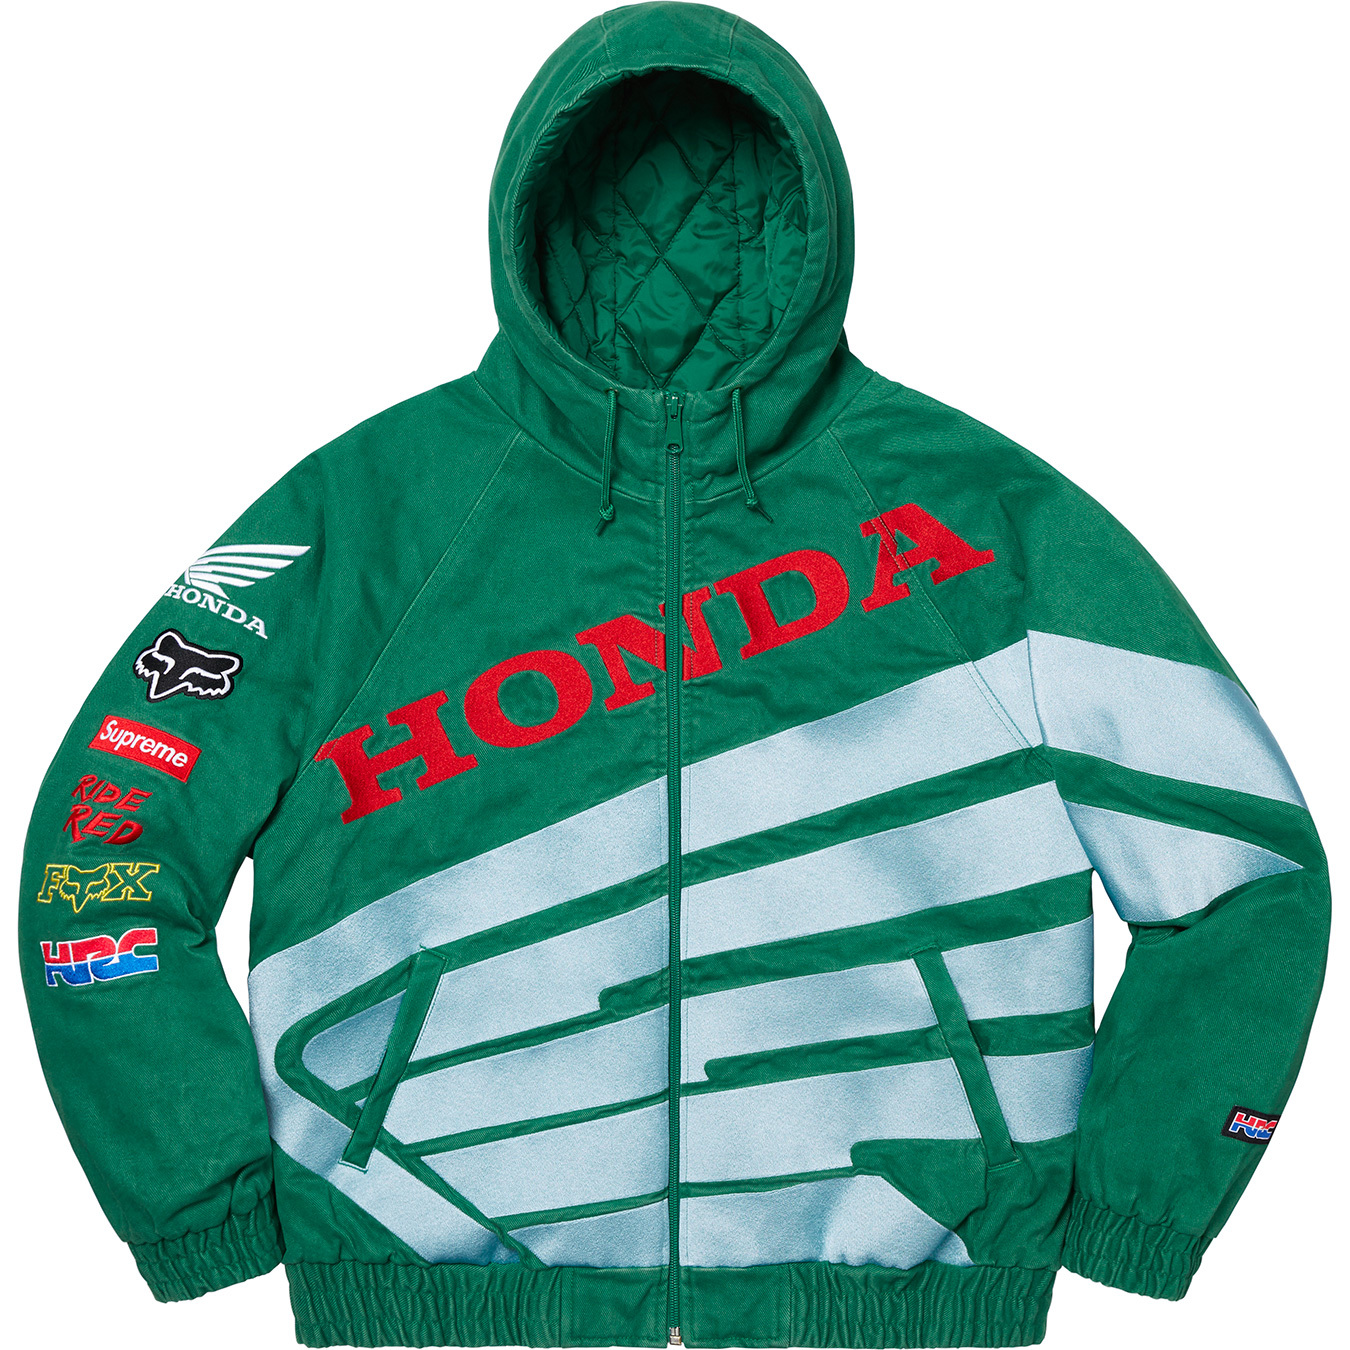 supreme-19aw-19fw-honda-fox-racing-collaboration-release-20191005-week6-puffy-zip-up-work-jacket